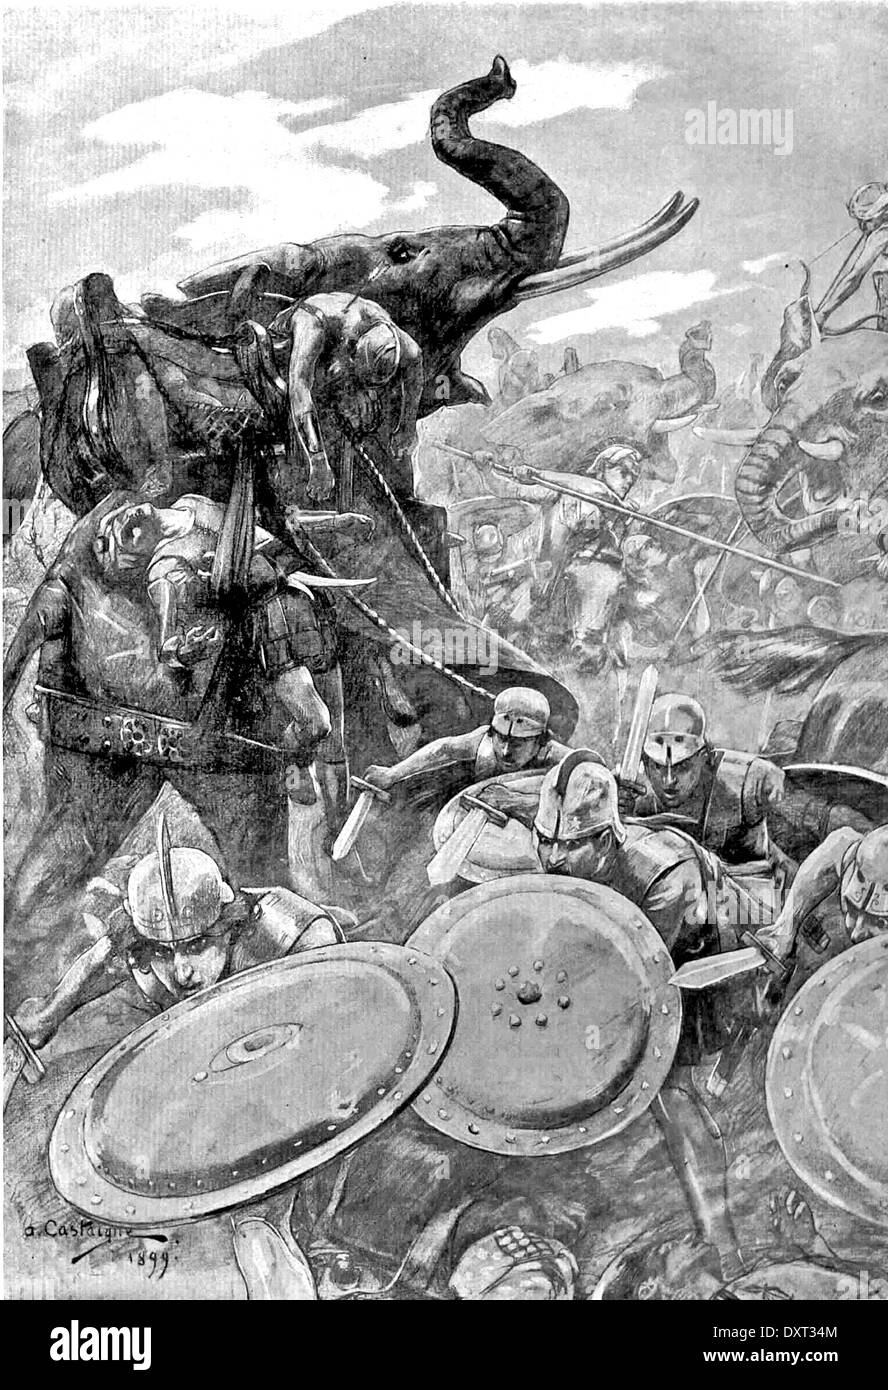 Alexander the Great. The phalanx attacking in the Battle of the Hydaspes - Stock Image